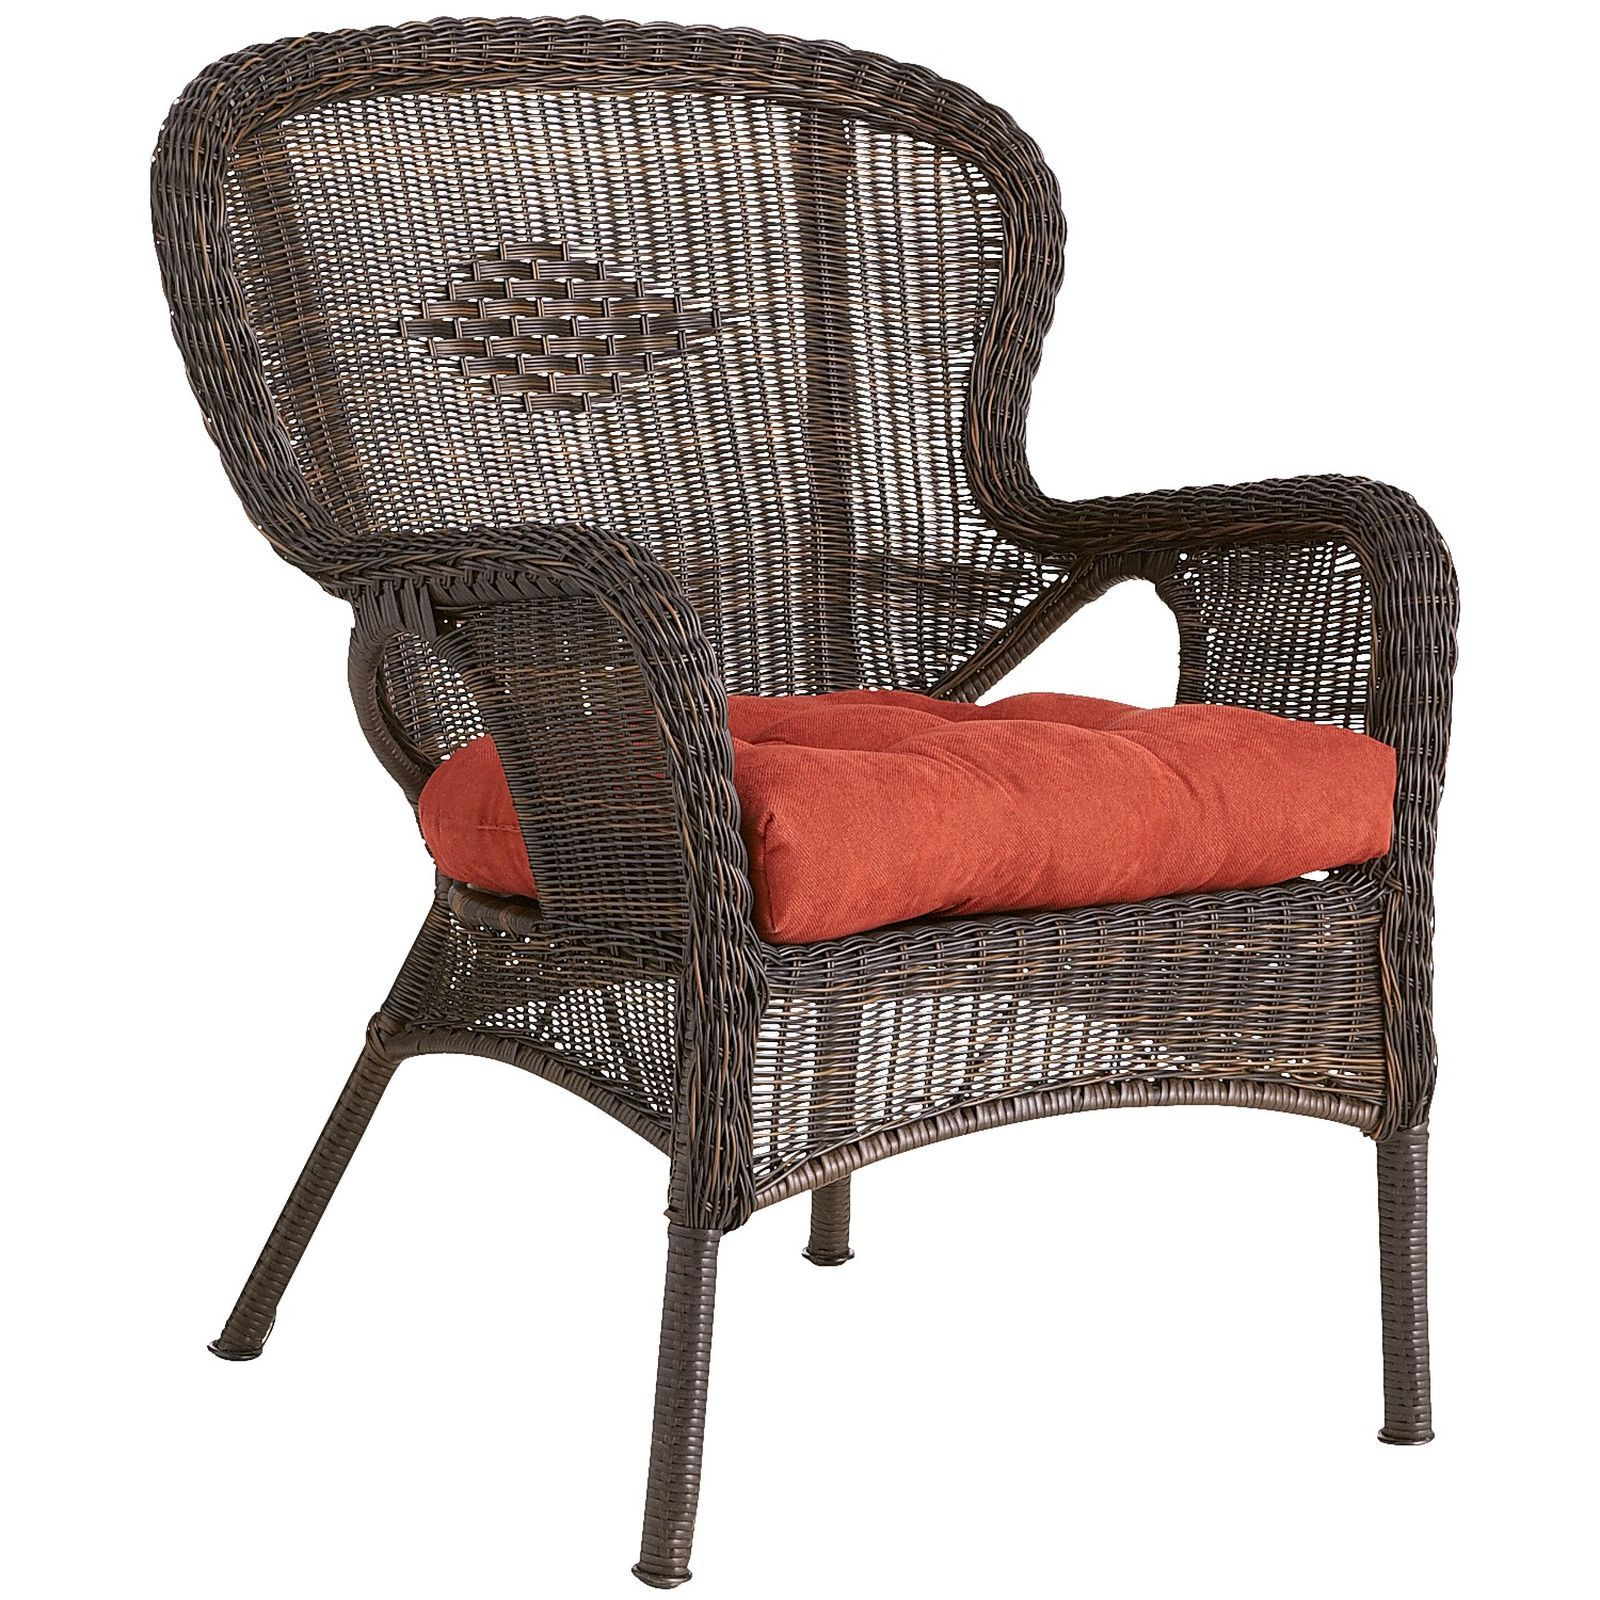 Coco Cove Armchair - Mocha | Pier 1 Imports (With images ...